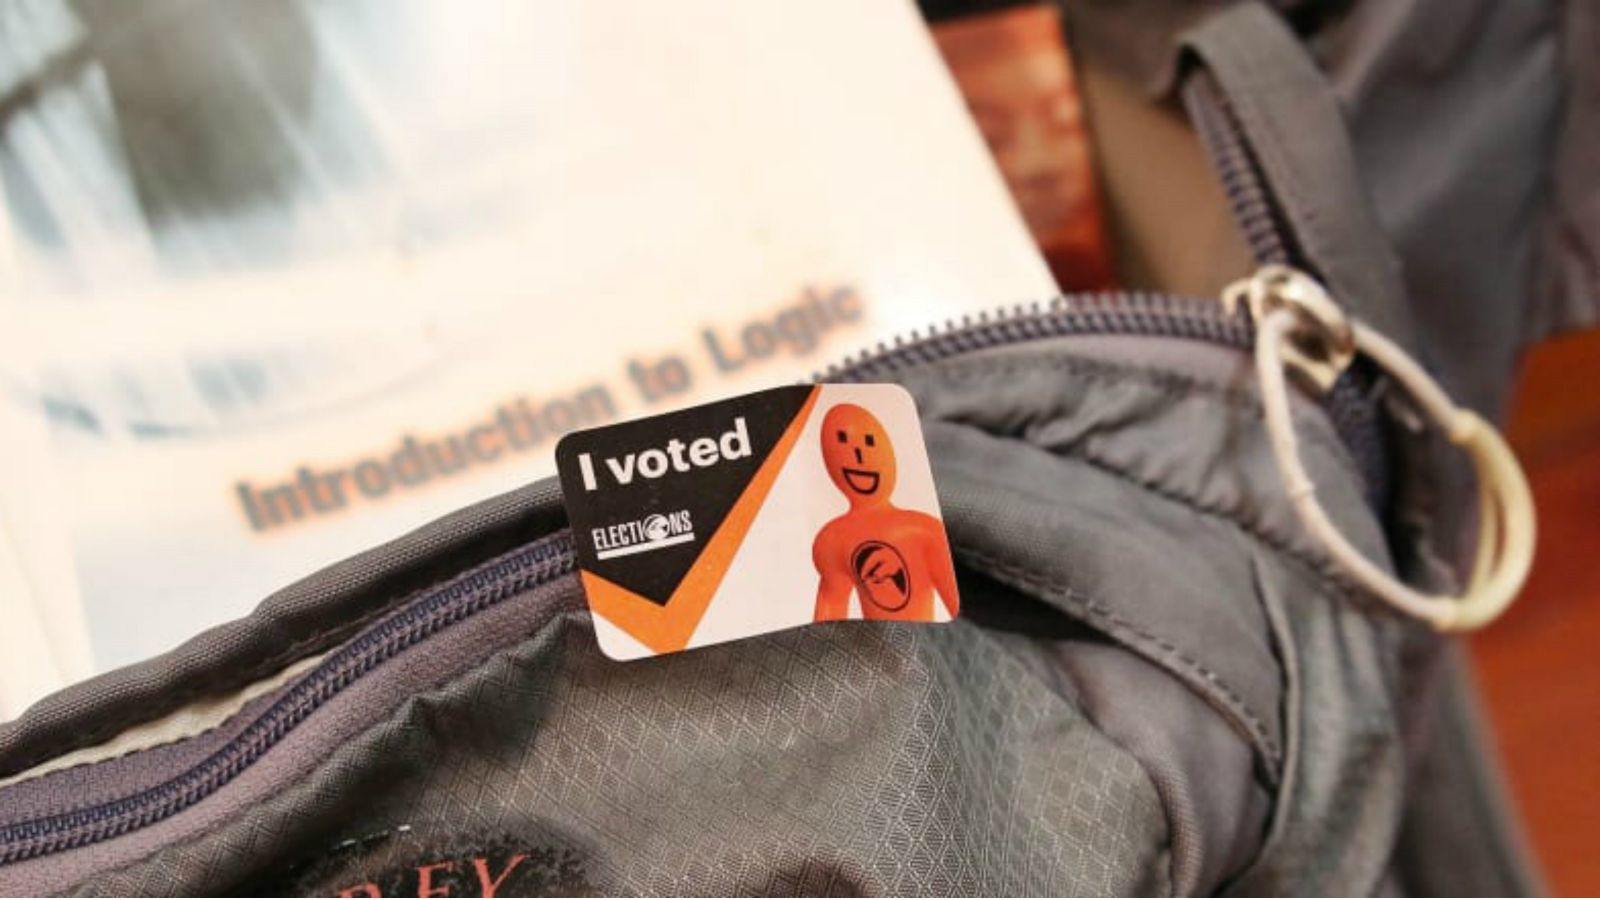 Image of an I voted card resting on a backpack.